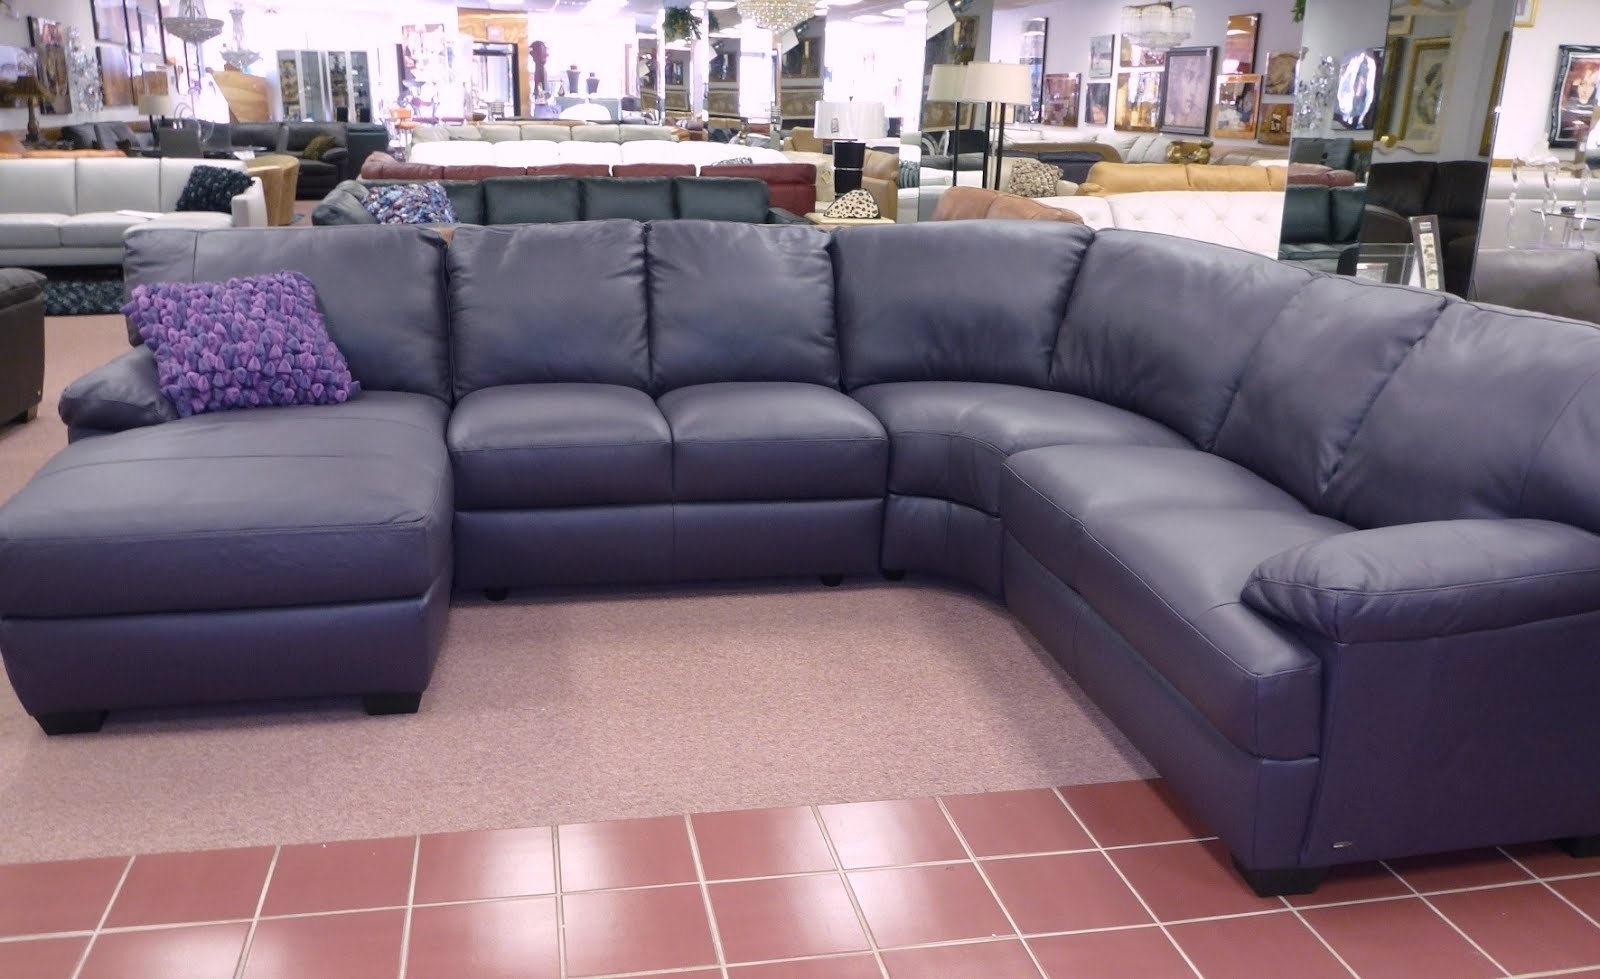 Popular Joining Hardware Sectional Sofas Pertaining To Furniture : Large Traditional Sectional Sofas Sectional Sofa Sale (View 14 of 15)